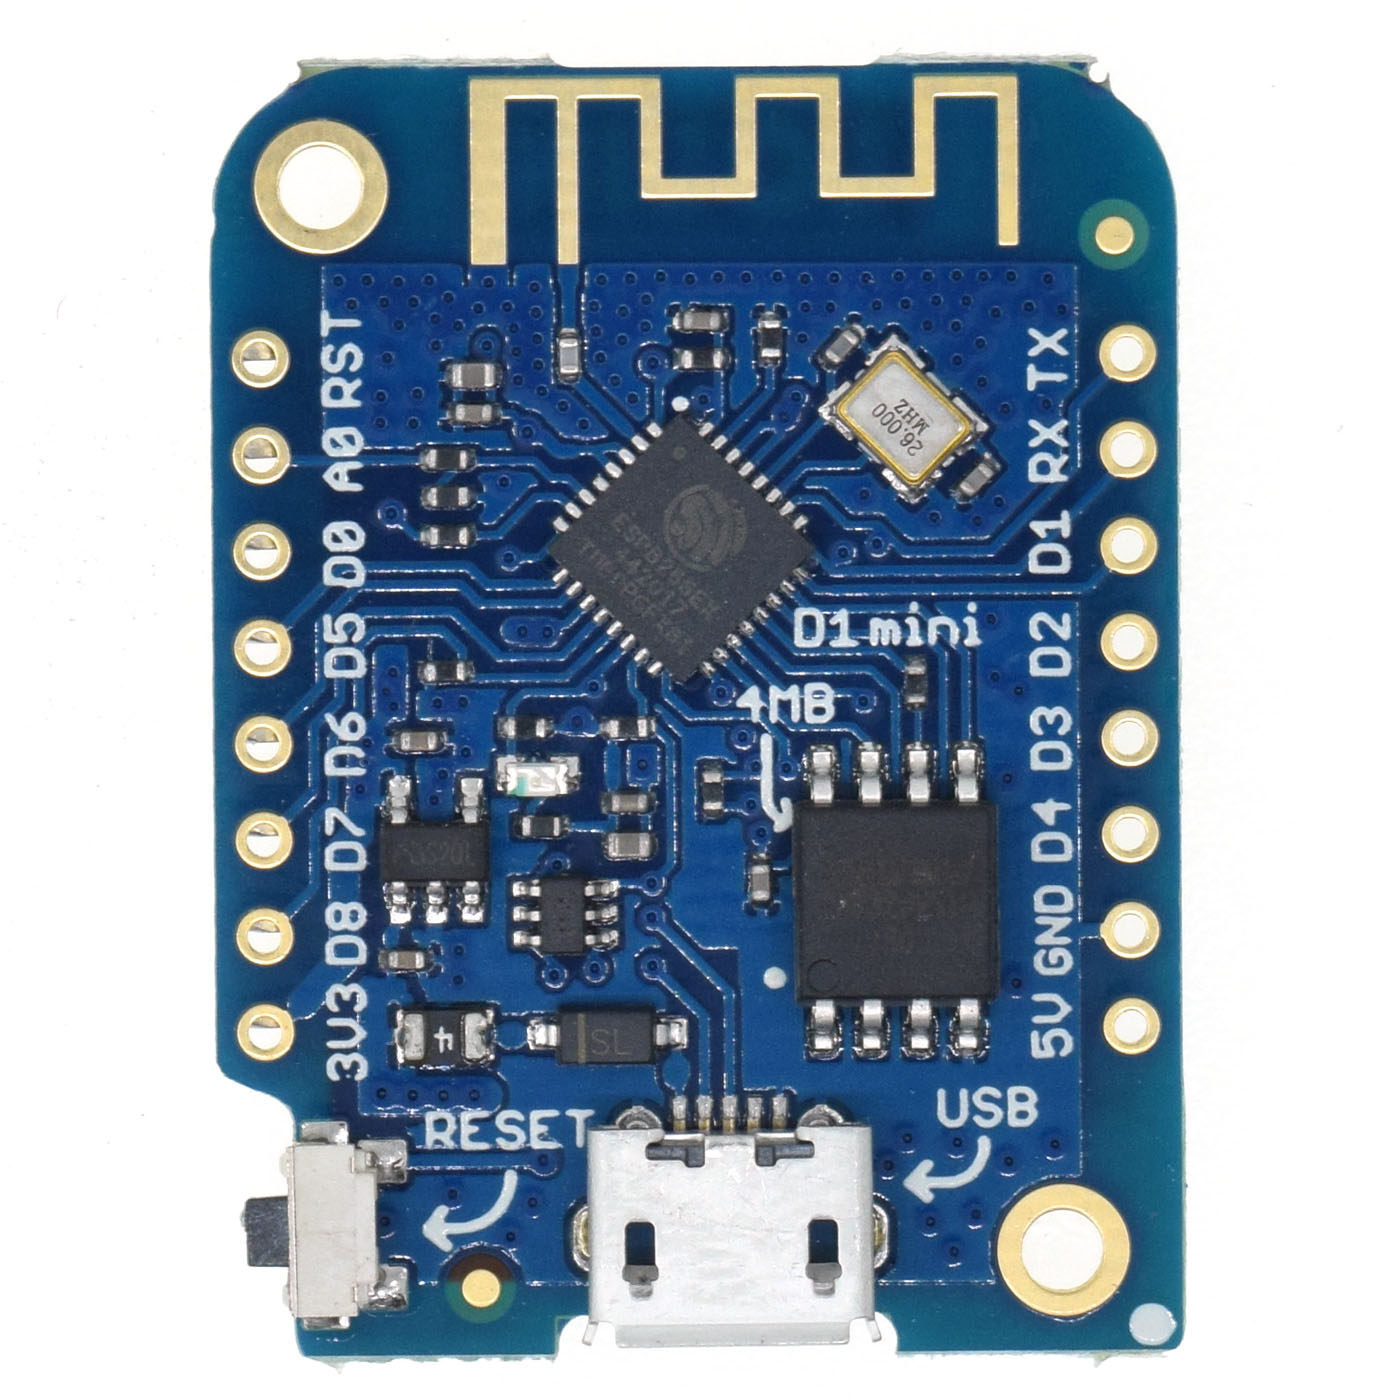 WEMOS D1 mini V3.0.0 - WIFI Internet of Things development board based ESP8266 4MB MicroPython Nodemcu Arduino Compatible